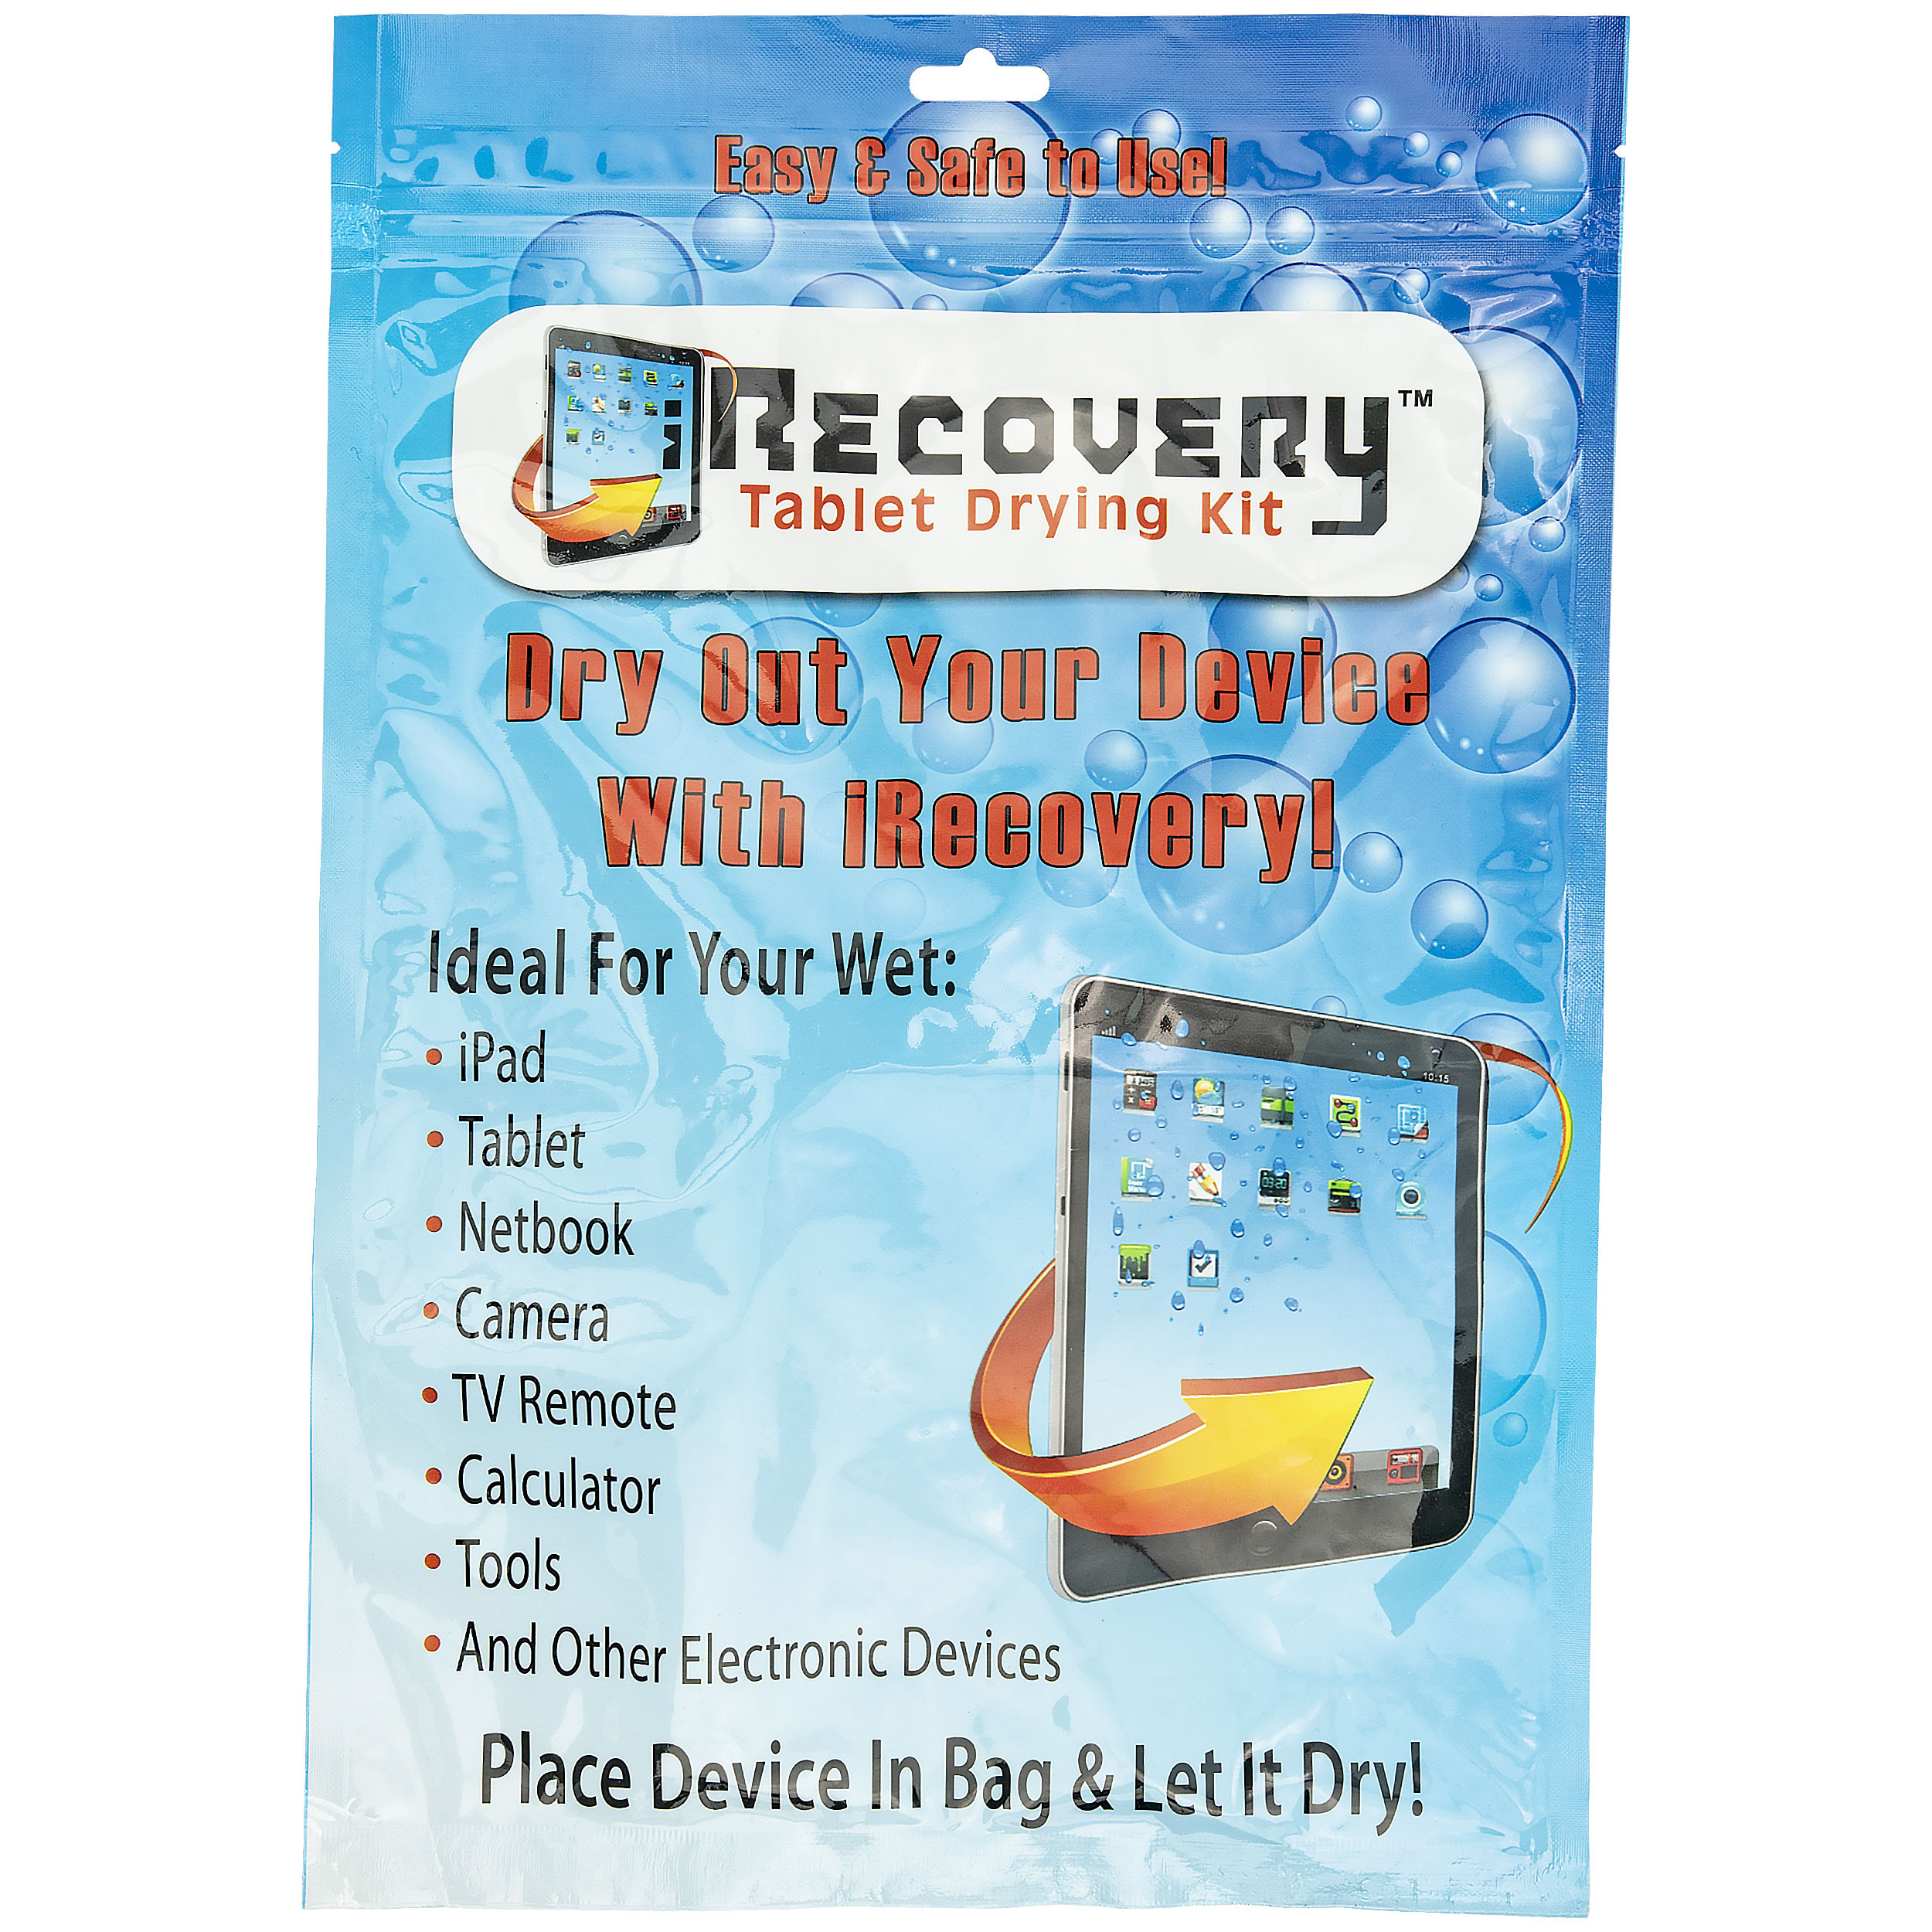 iRecovery Tablet Drying Kit